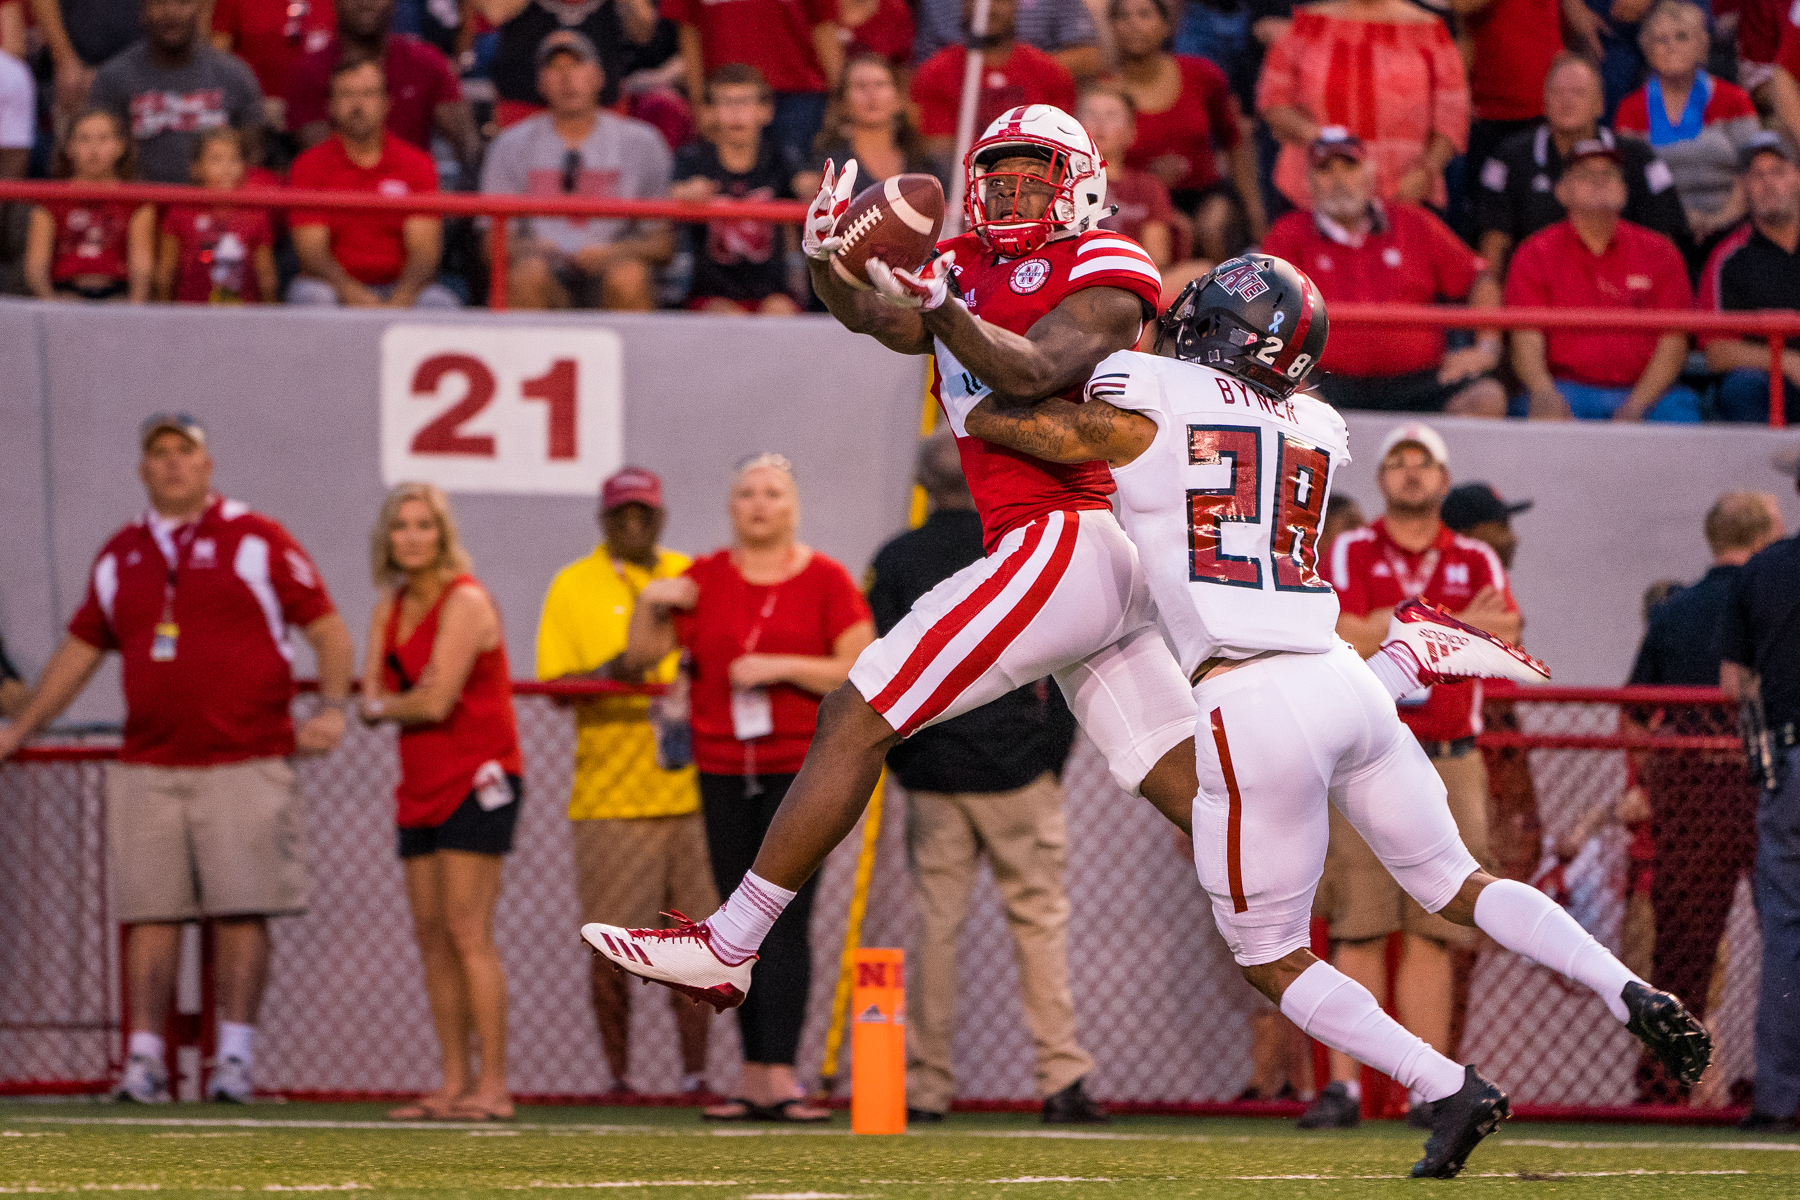 Stanley Morgan Jr. #8 of the Nebraska Cornhuskers catches a touchdown pass during Nebraska's game against Arkansas State at Memorial Stadium on Sept. 2, 2017. Photo by Aaron Babcock, Hail Varsity